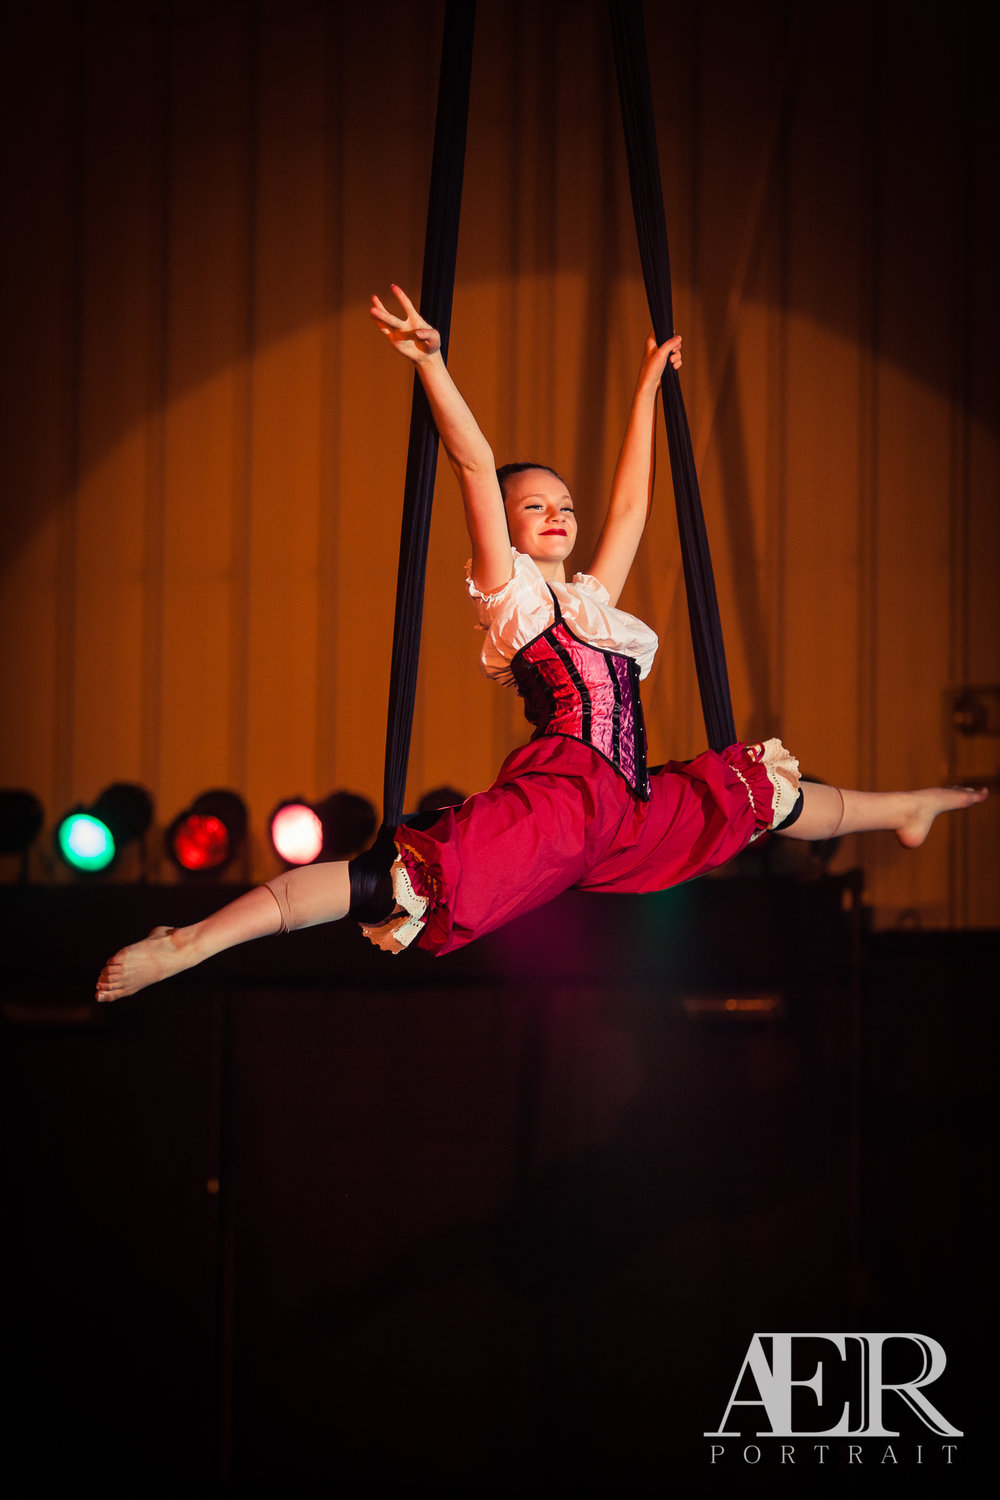 Louisville Performing Arts Photography - Turners Circus - AER Portrait 8